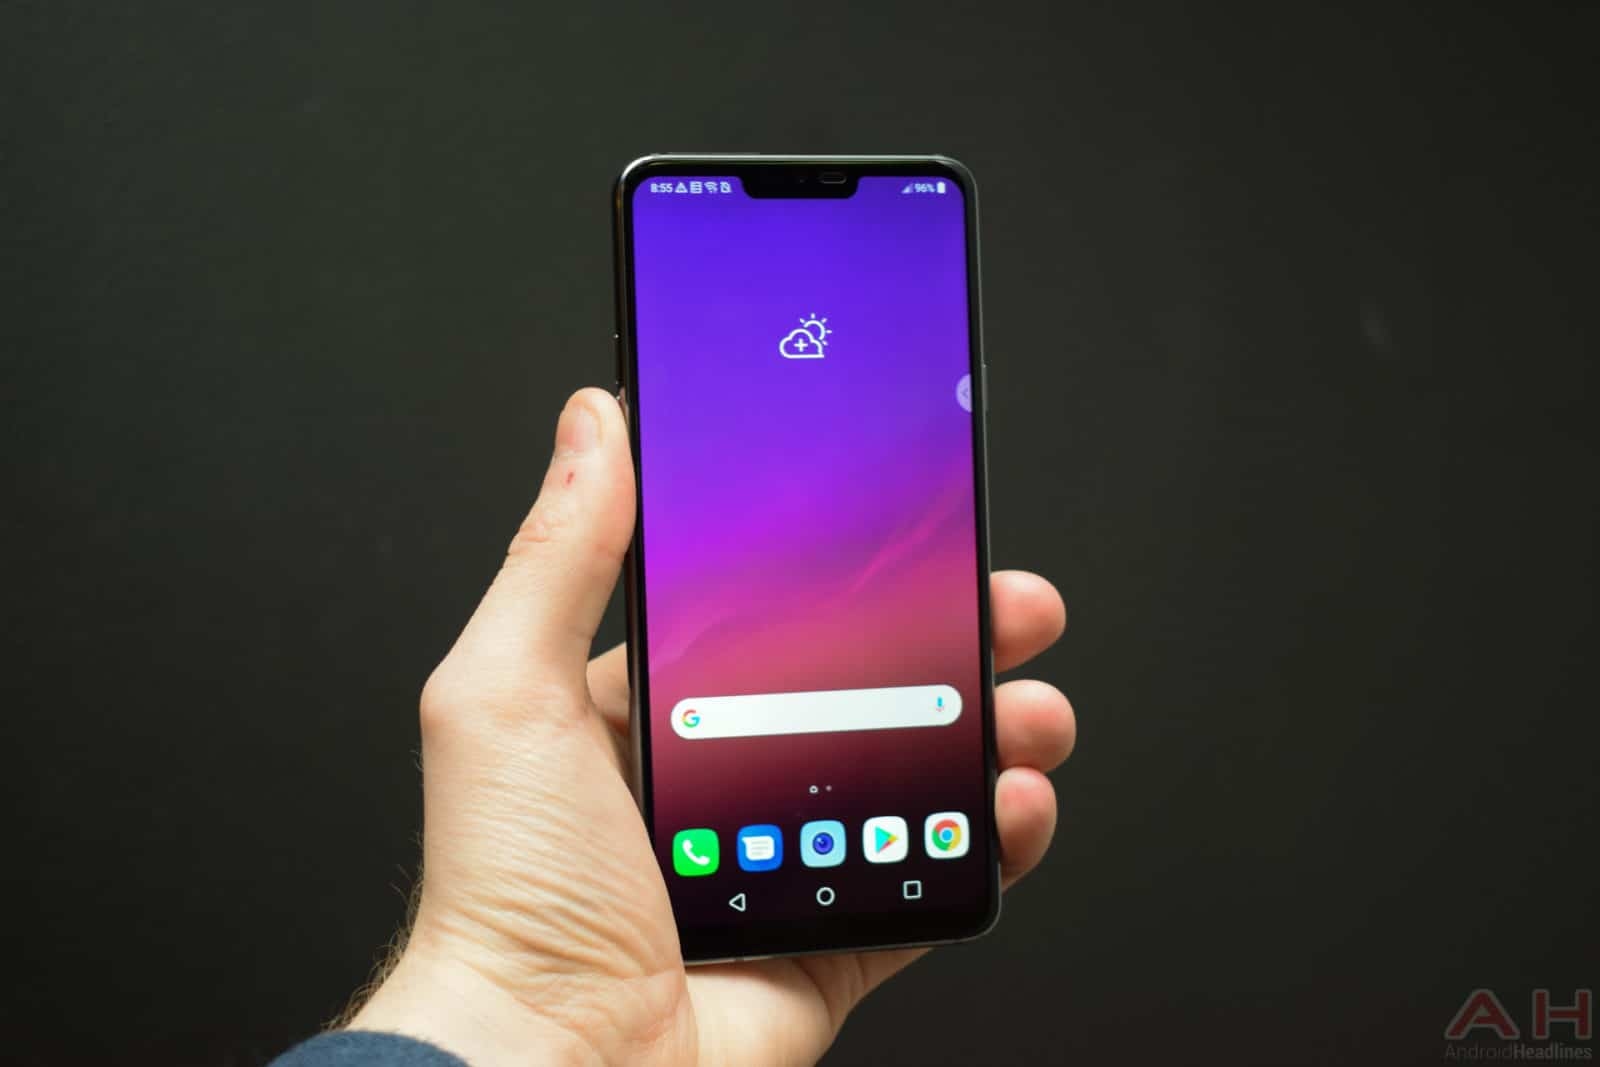 lg g7 thinq wallpapers are now available for download | android news